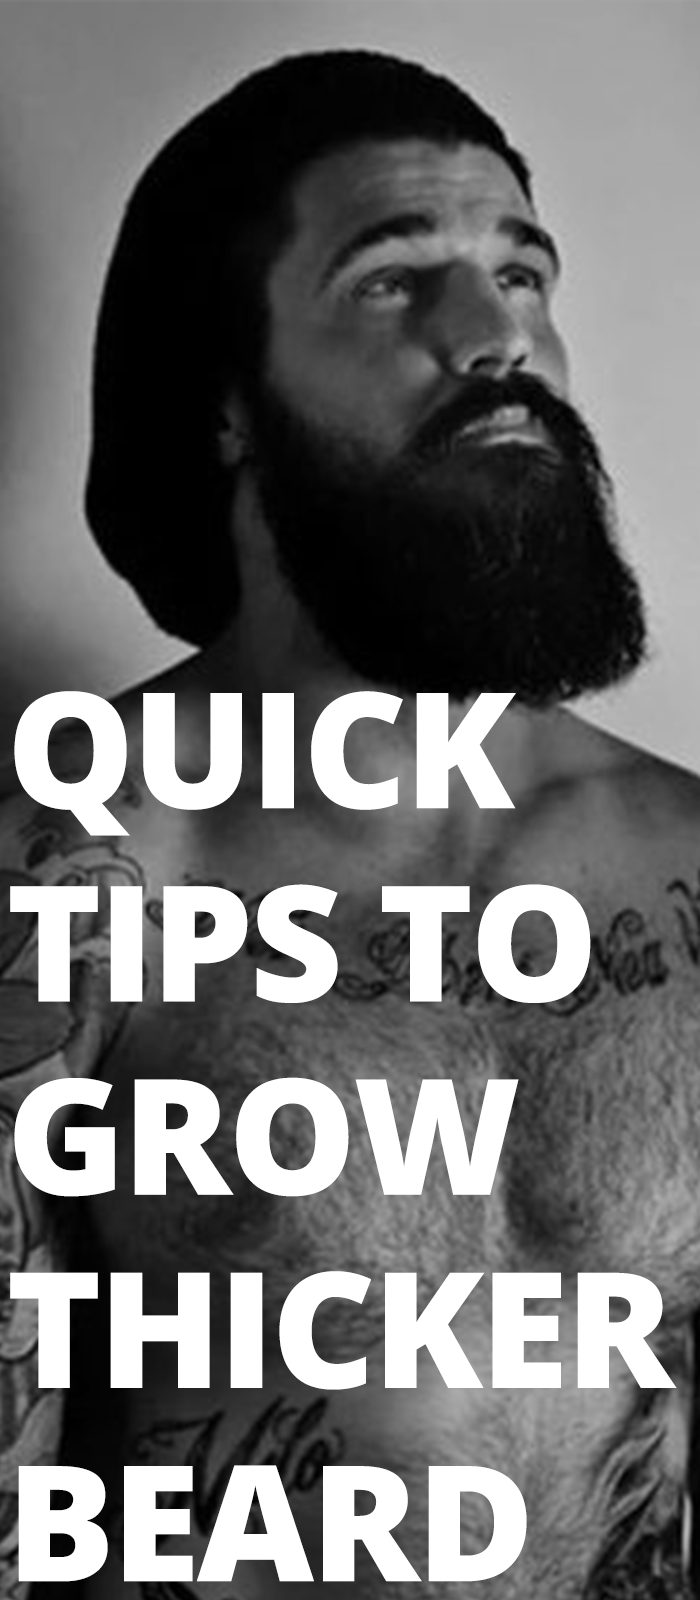 Quick Tips To Grow Thicker Beard